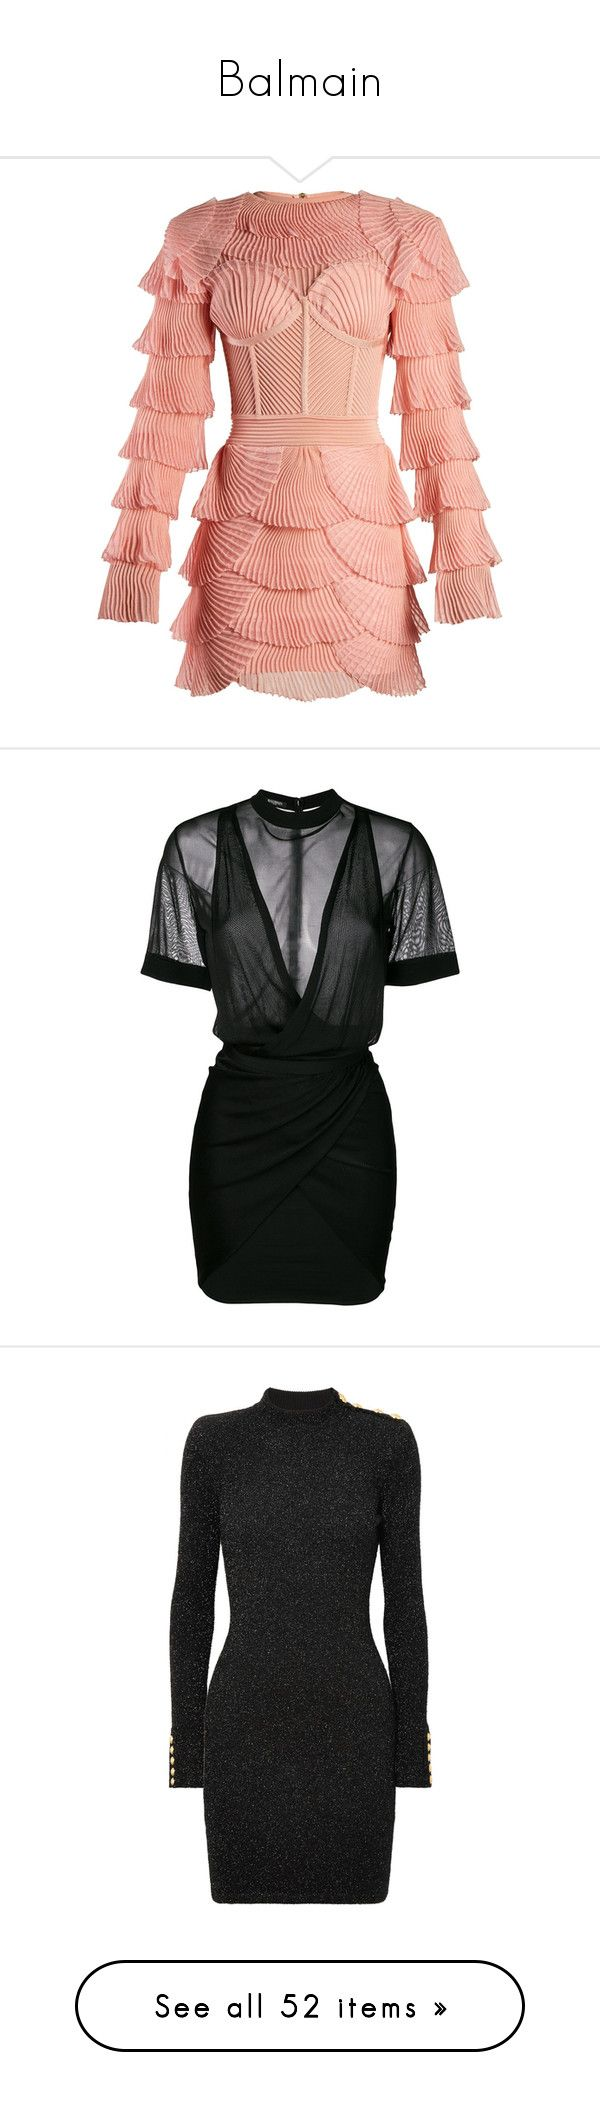 """""""Balmain"""" by adindav ❤ liked on Polyvore featuring dresses, pink, long-sleeve mini dresses, pink mini dress, pink corset, red sheer dress, see through dress, jeans, pants and bottoms"""